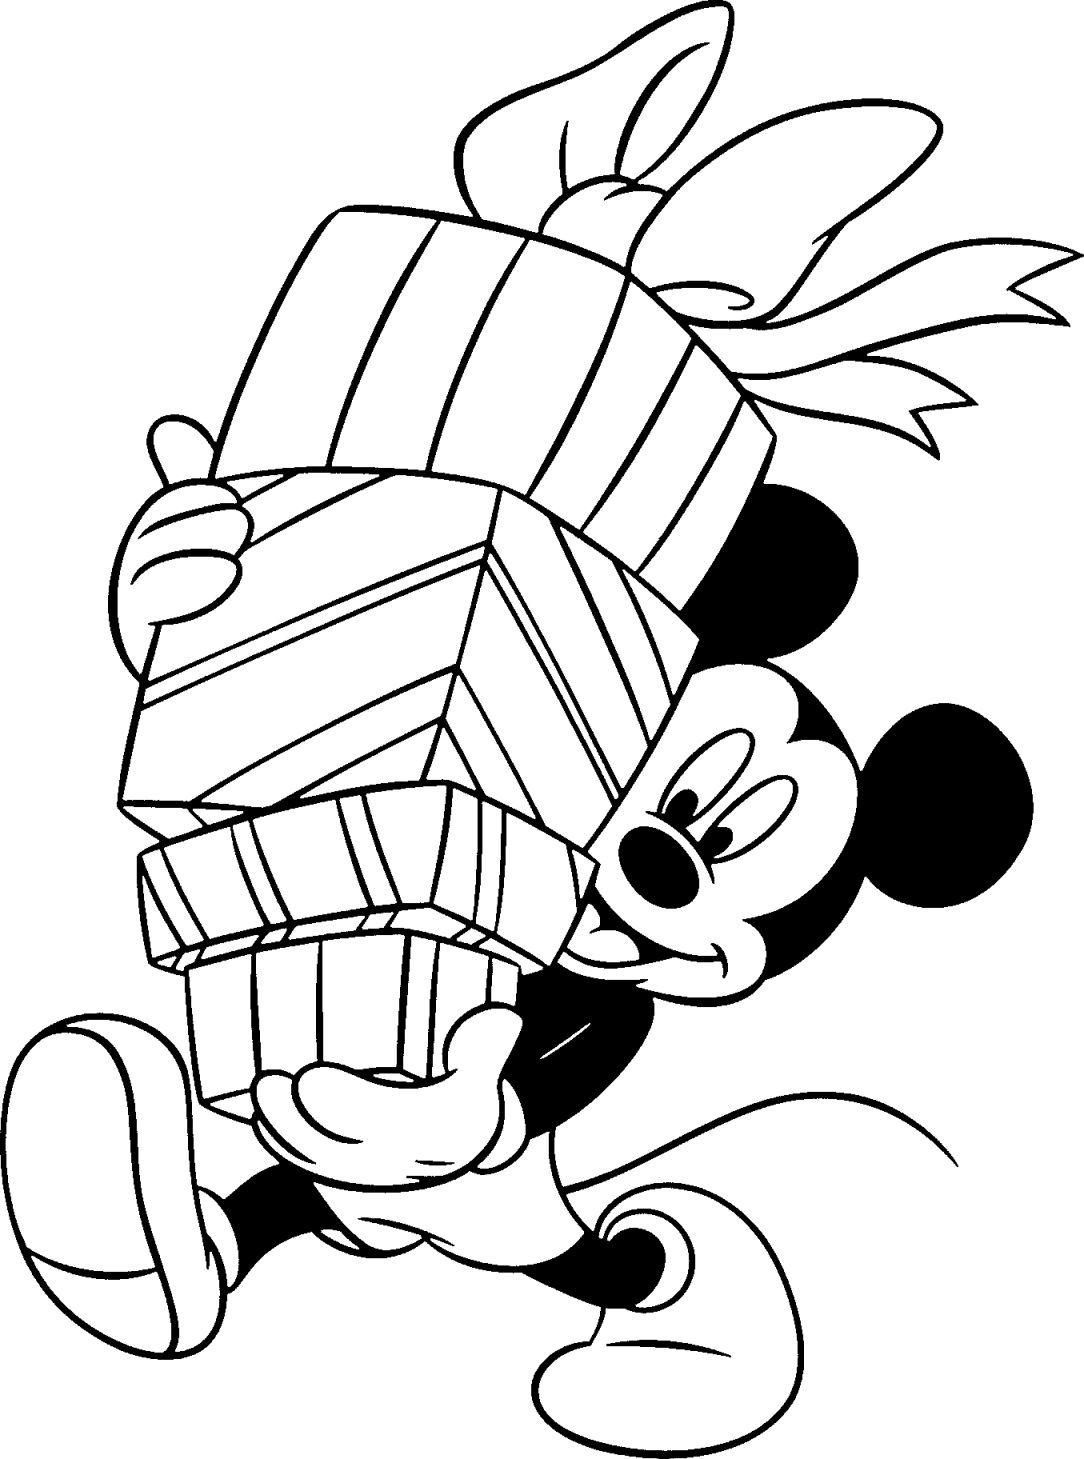 - Free Disney Christmas Printable Coloring Pages For Kids (With